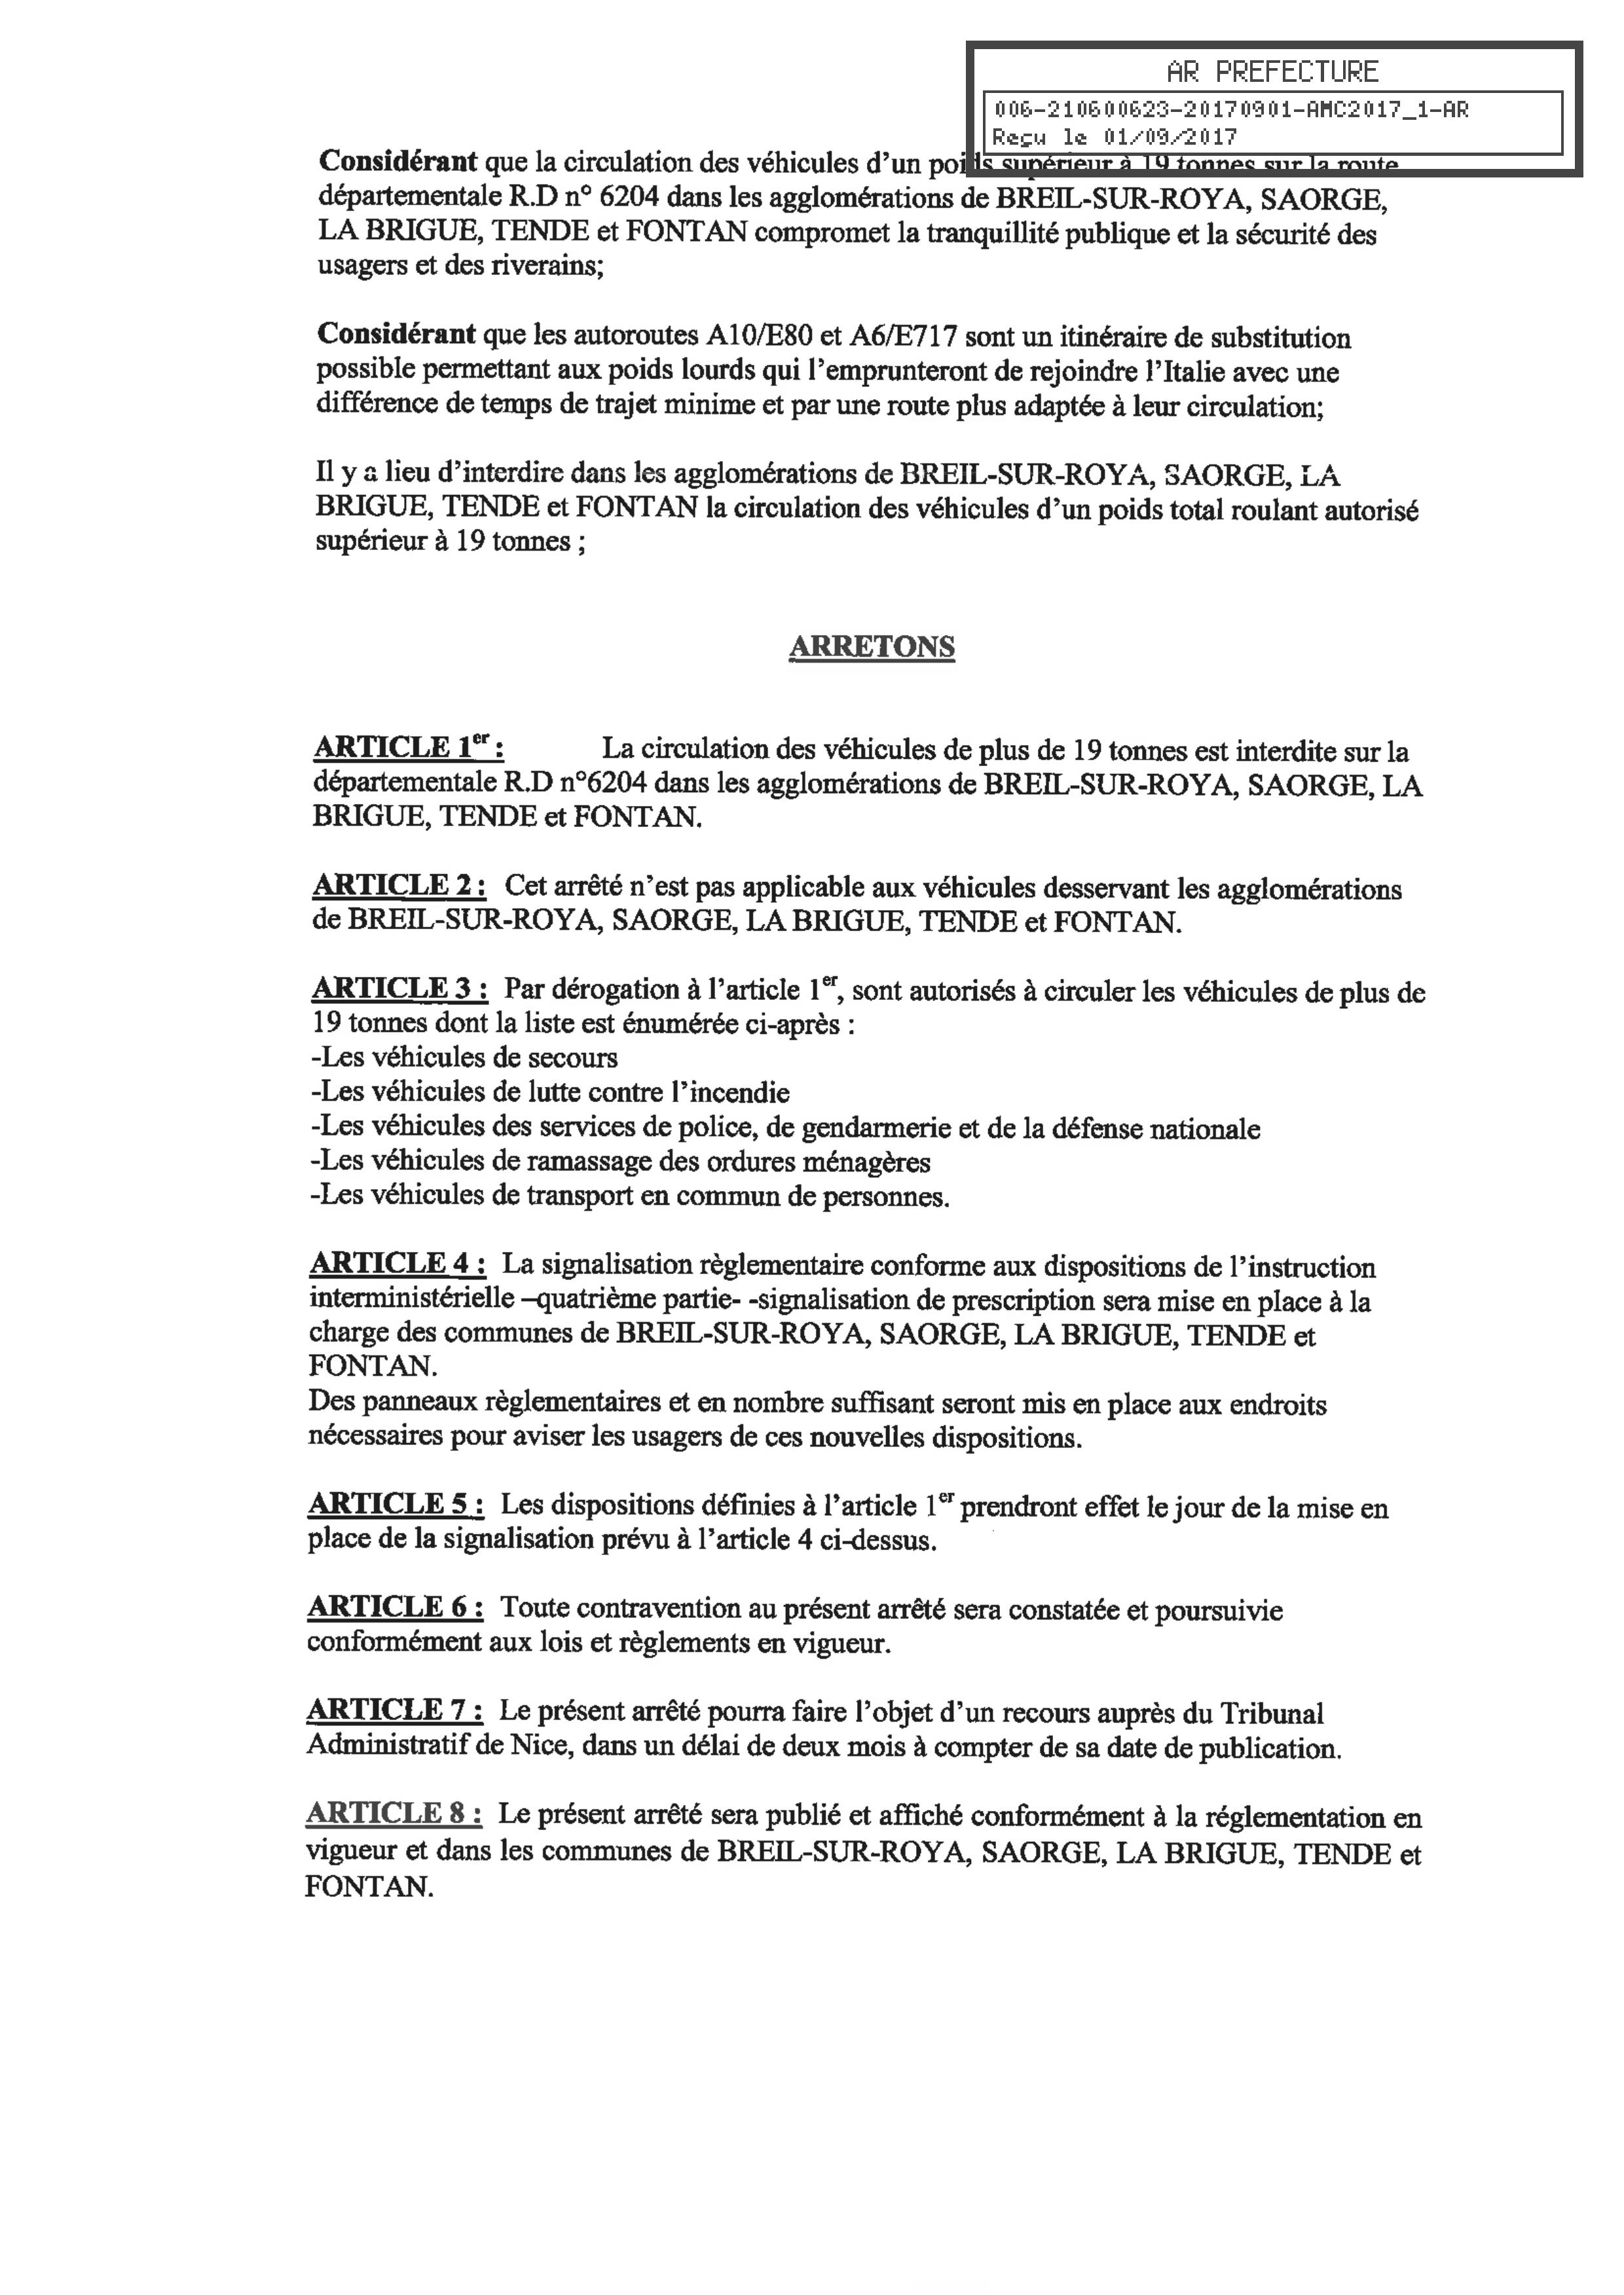 ARRETE-INTERDICTION-CIRCULATION-LIMITATION-TONNAGE-RD6204-AGGLO-BREIL-SAORGE-LA-BRIGUE-TENDE-FONTAN-page2